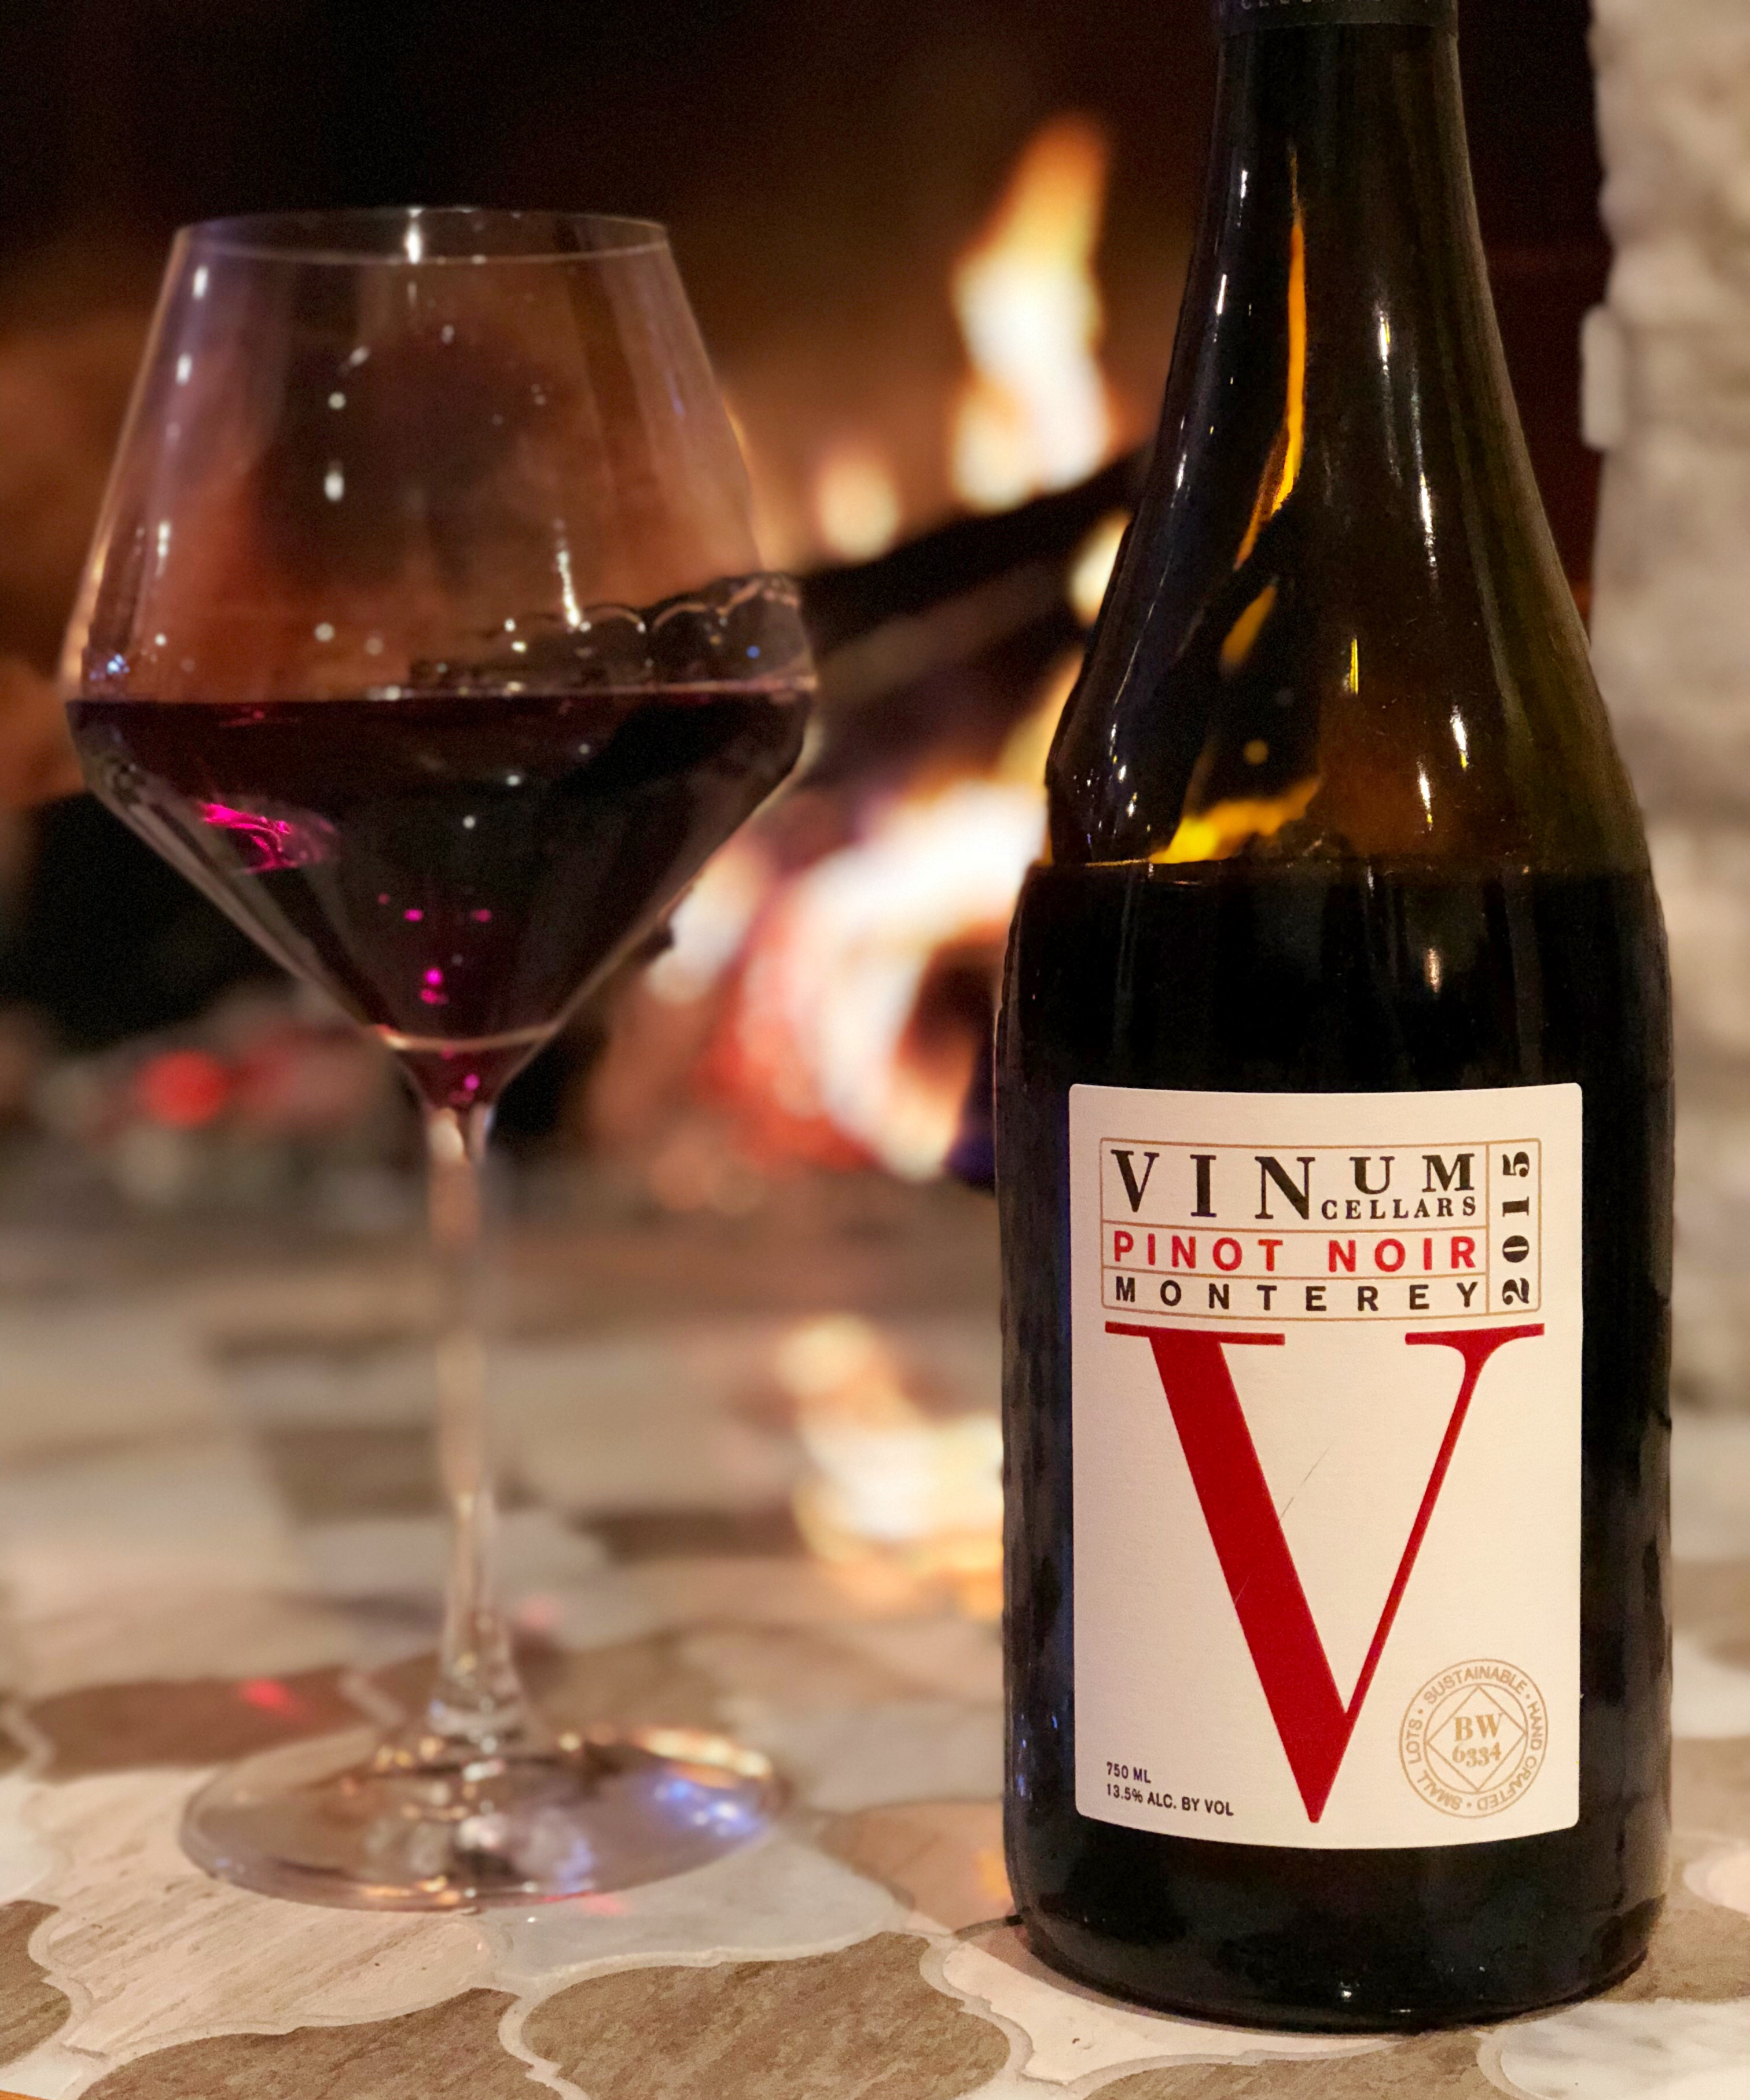 Winemaking Grapes are from Monterey near King City on the West side foothills of the lower Santa Lucia Highlands. Malo-Lactic fermentation and 9 months ... & A Friendly California Trio from Vinum Cellars u2013 cara rutherford